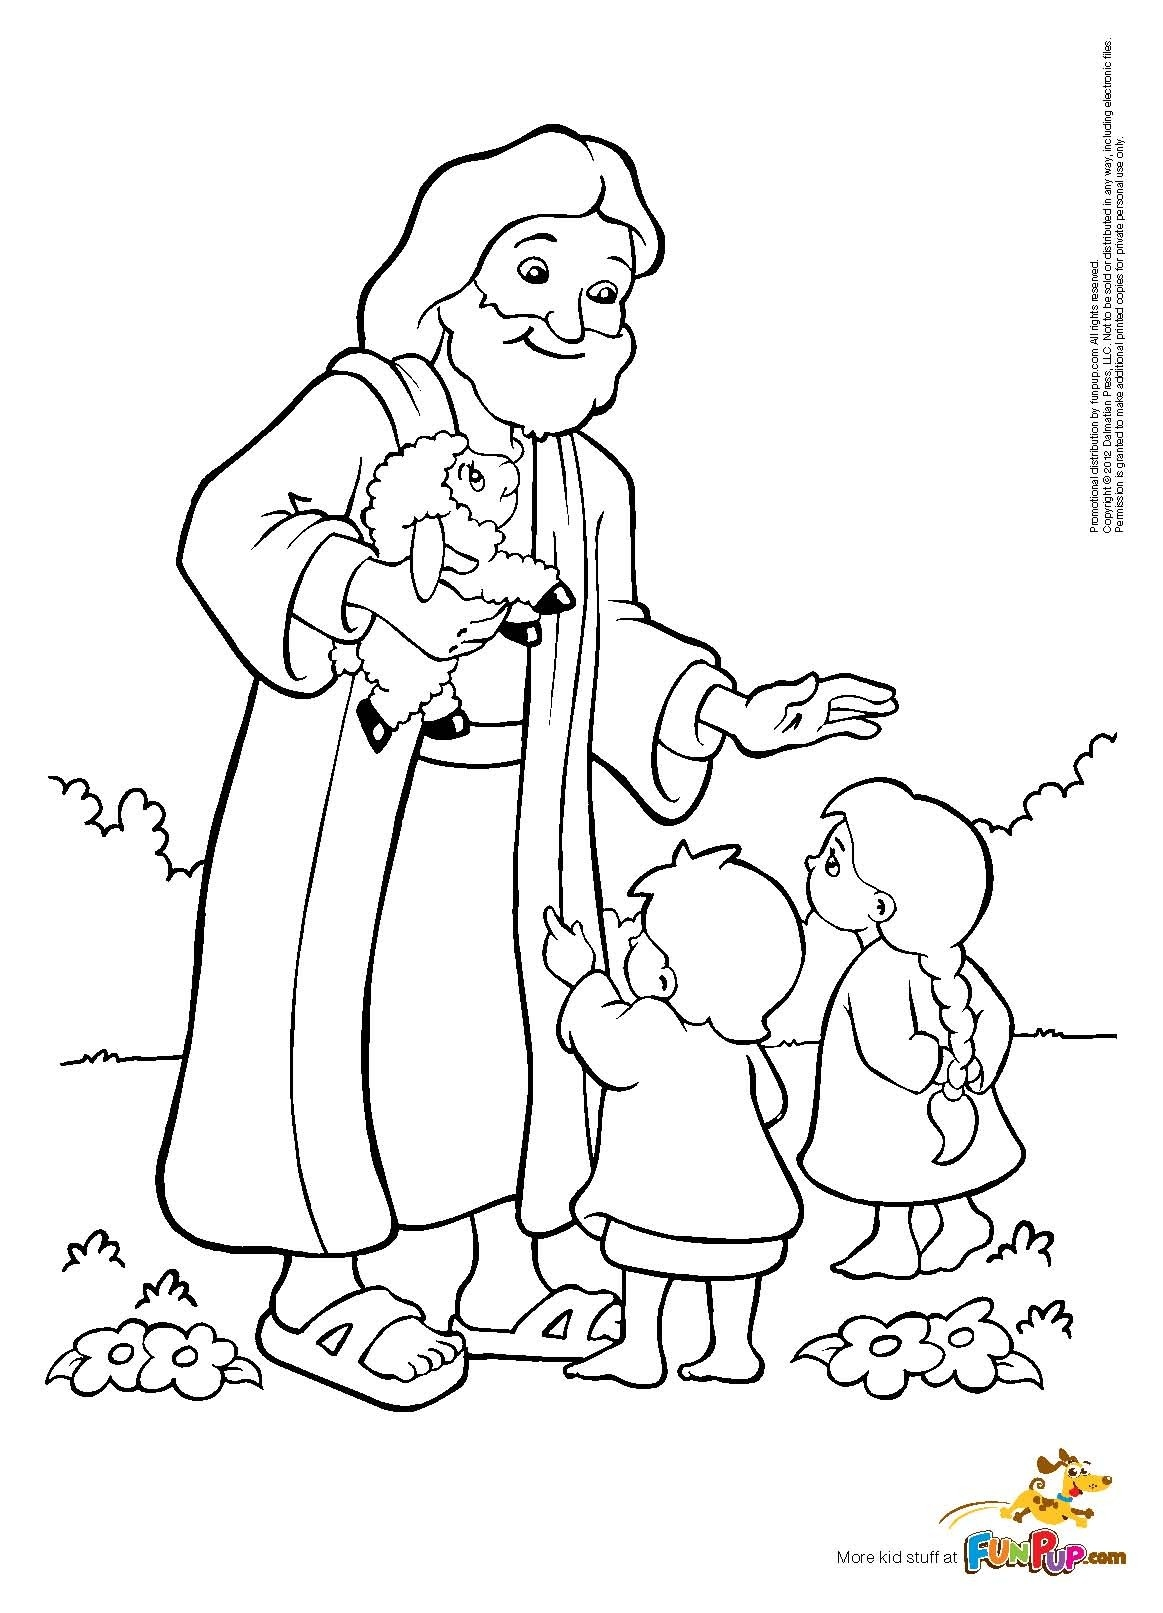 jesus and the children coloring page -